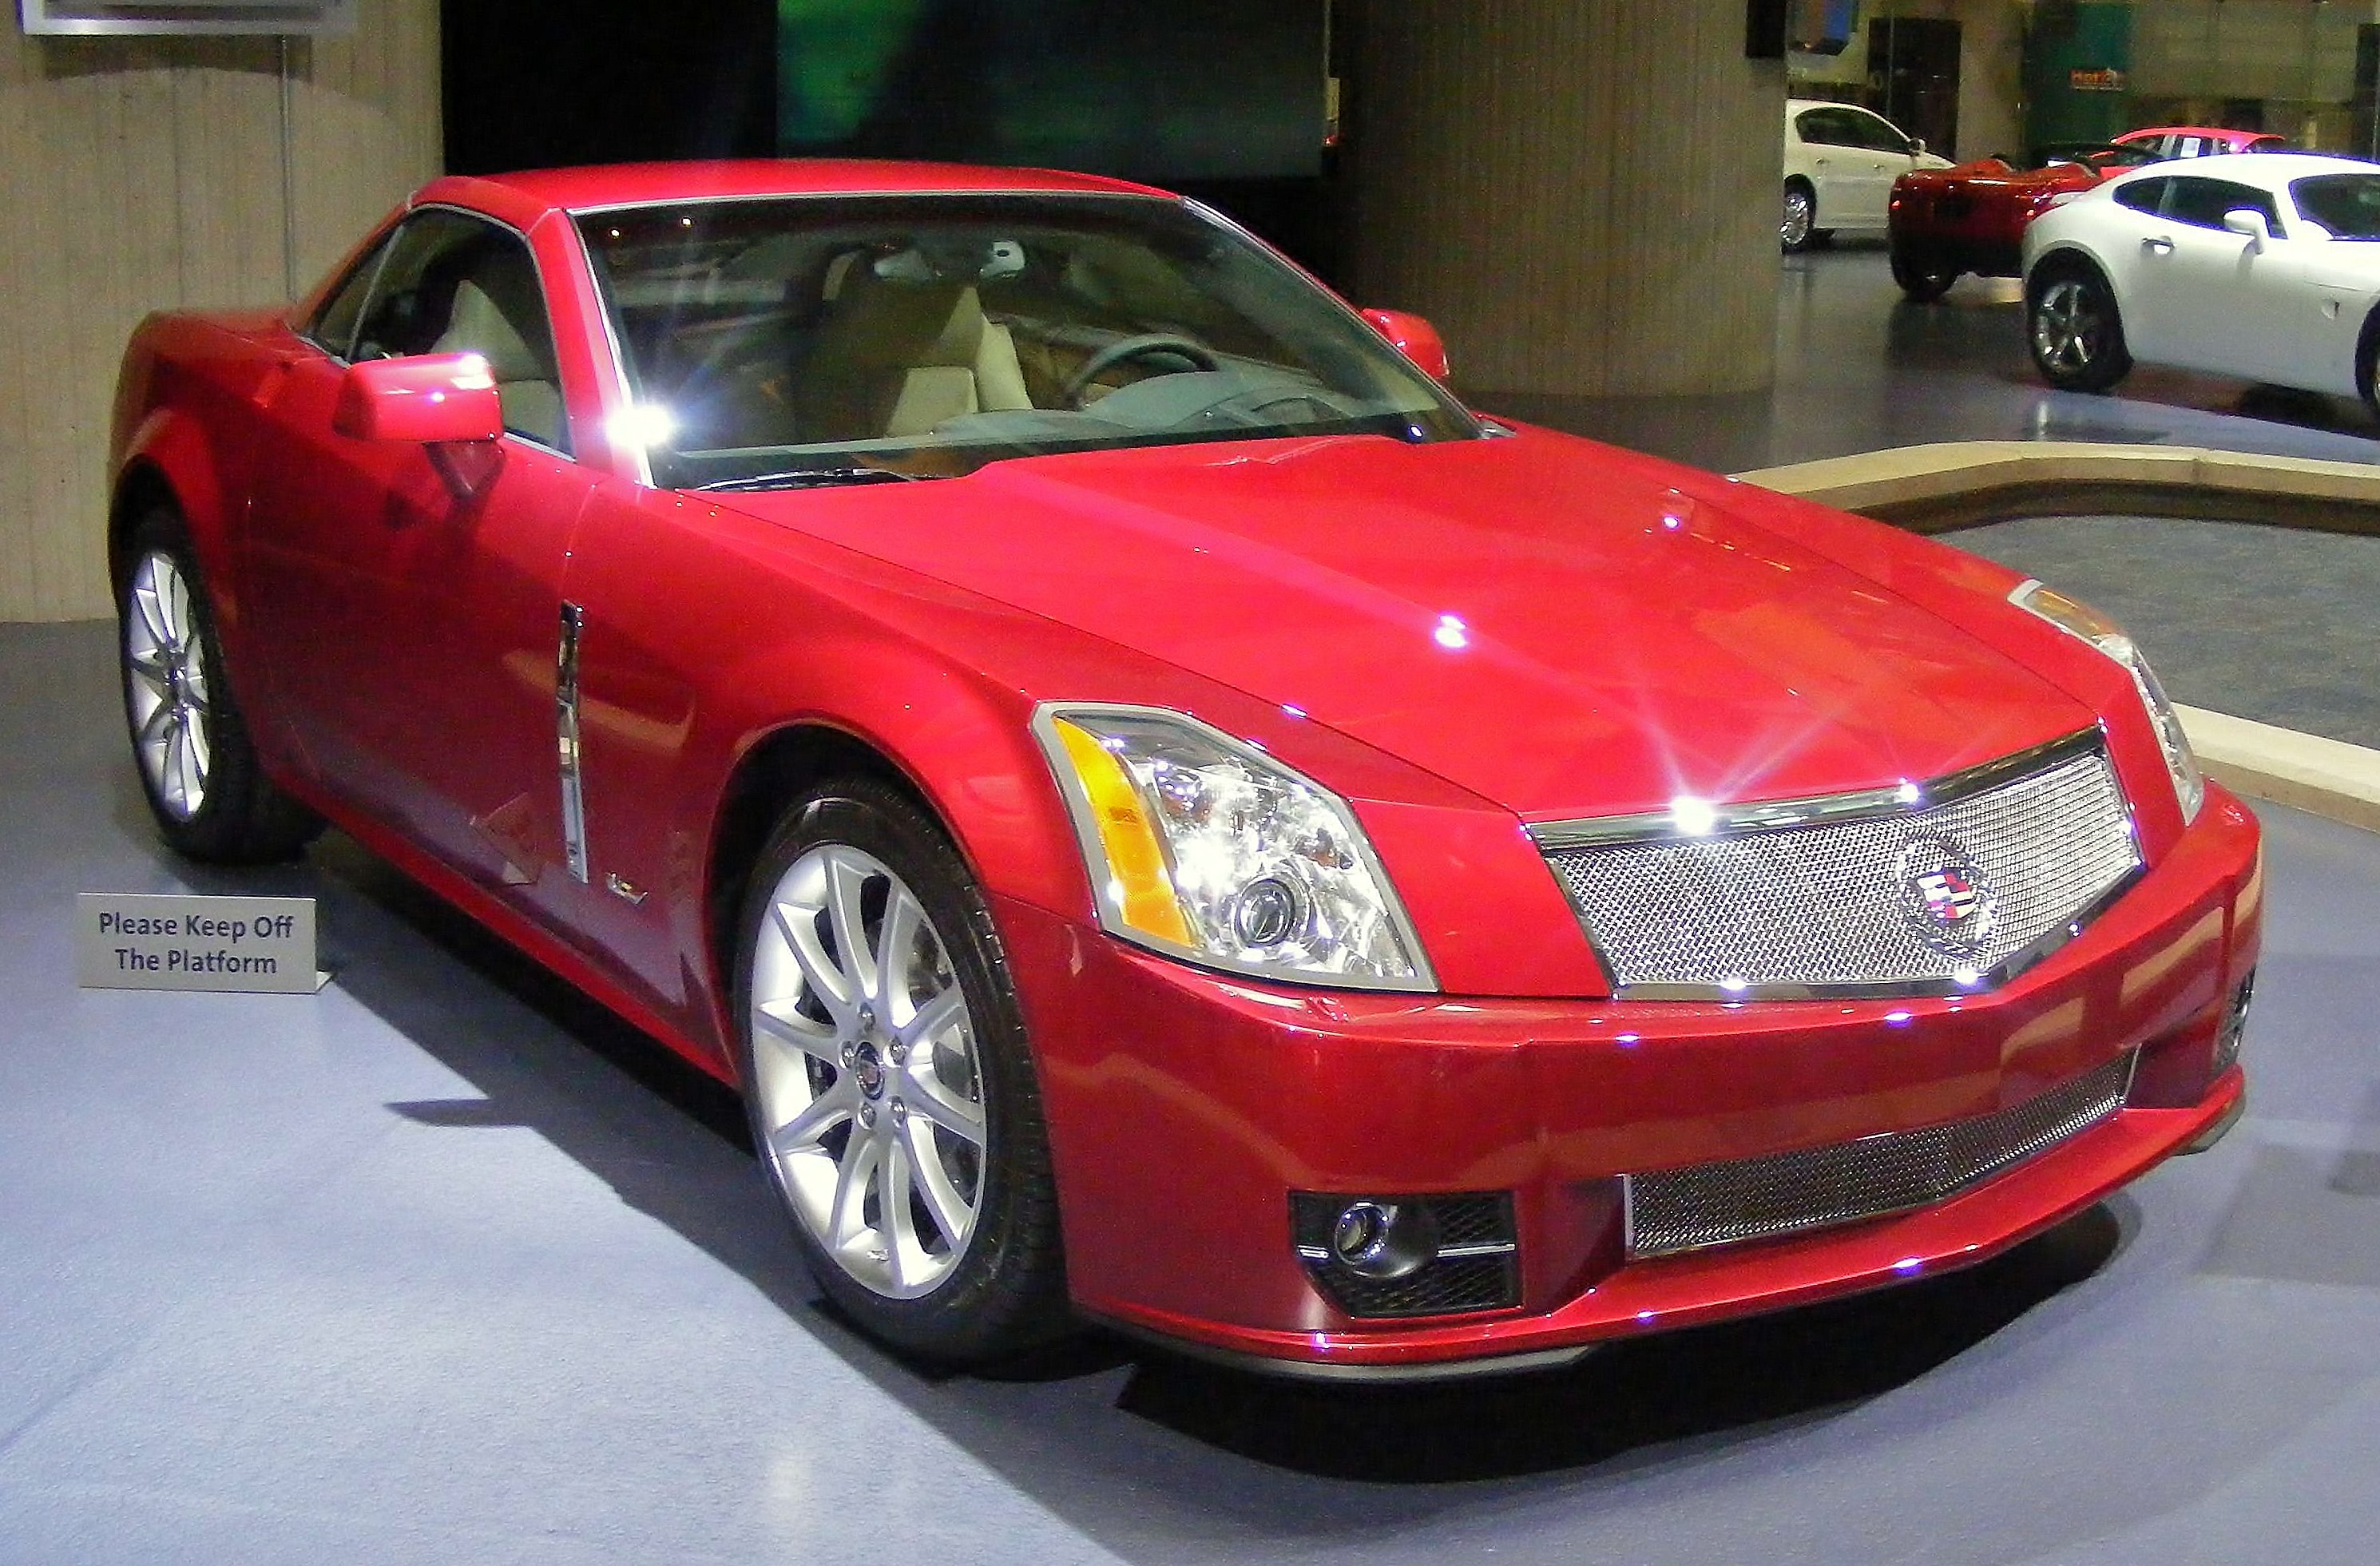 Performance Upgrades For The 6l80 Transmission In You Cadillac Xlr V